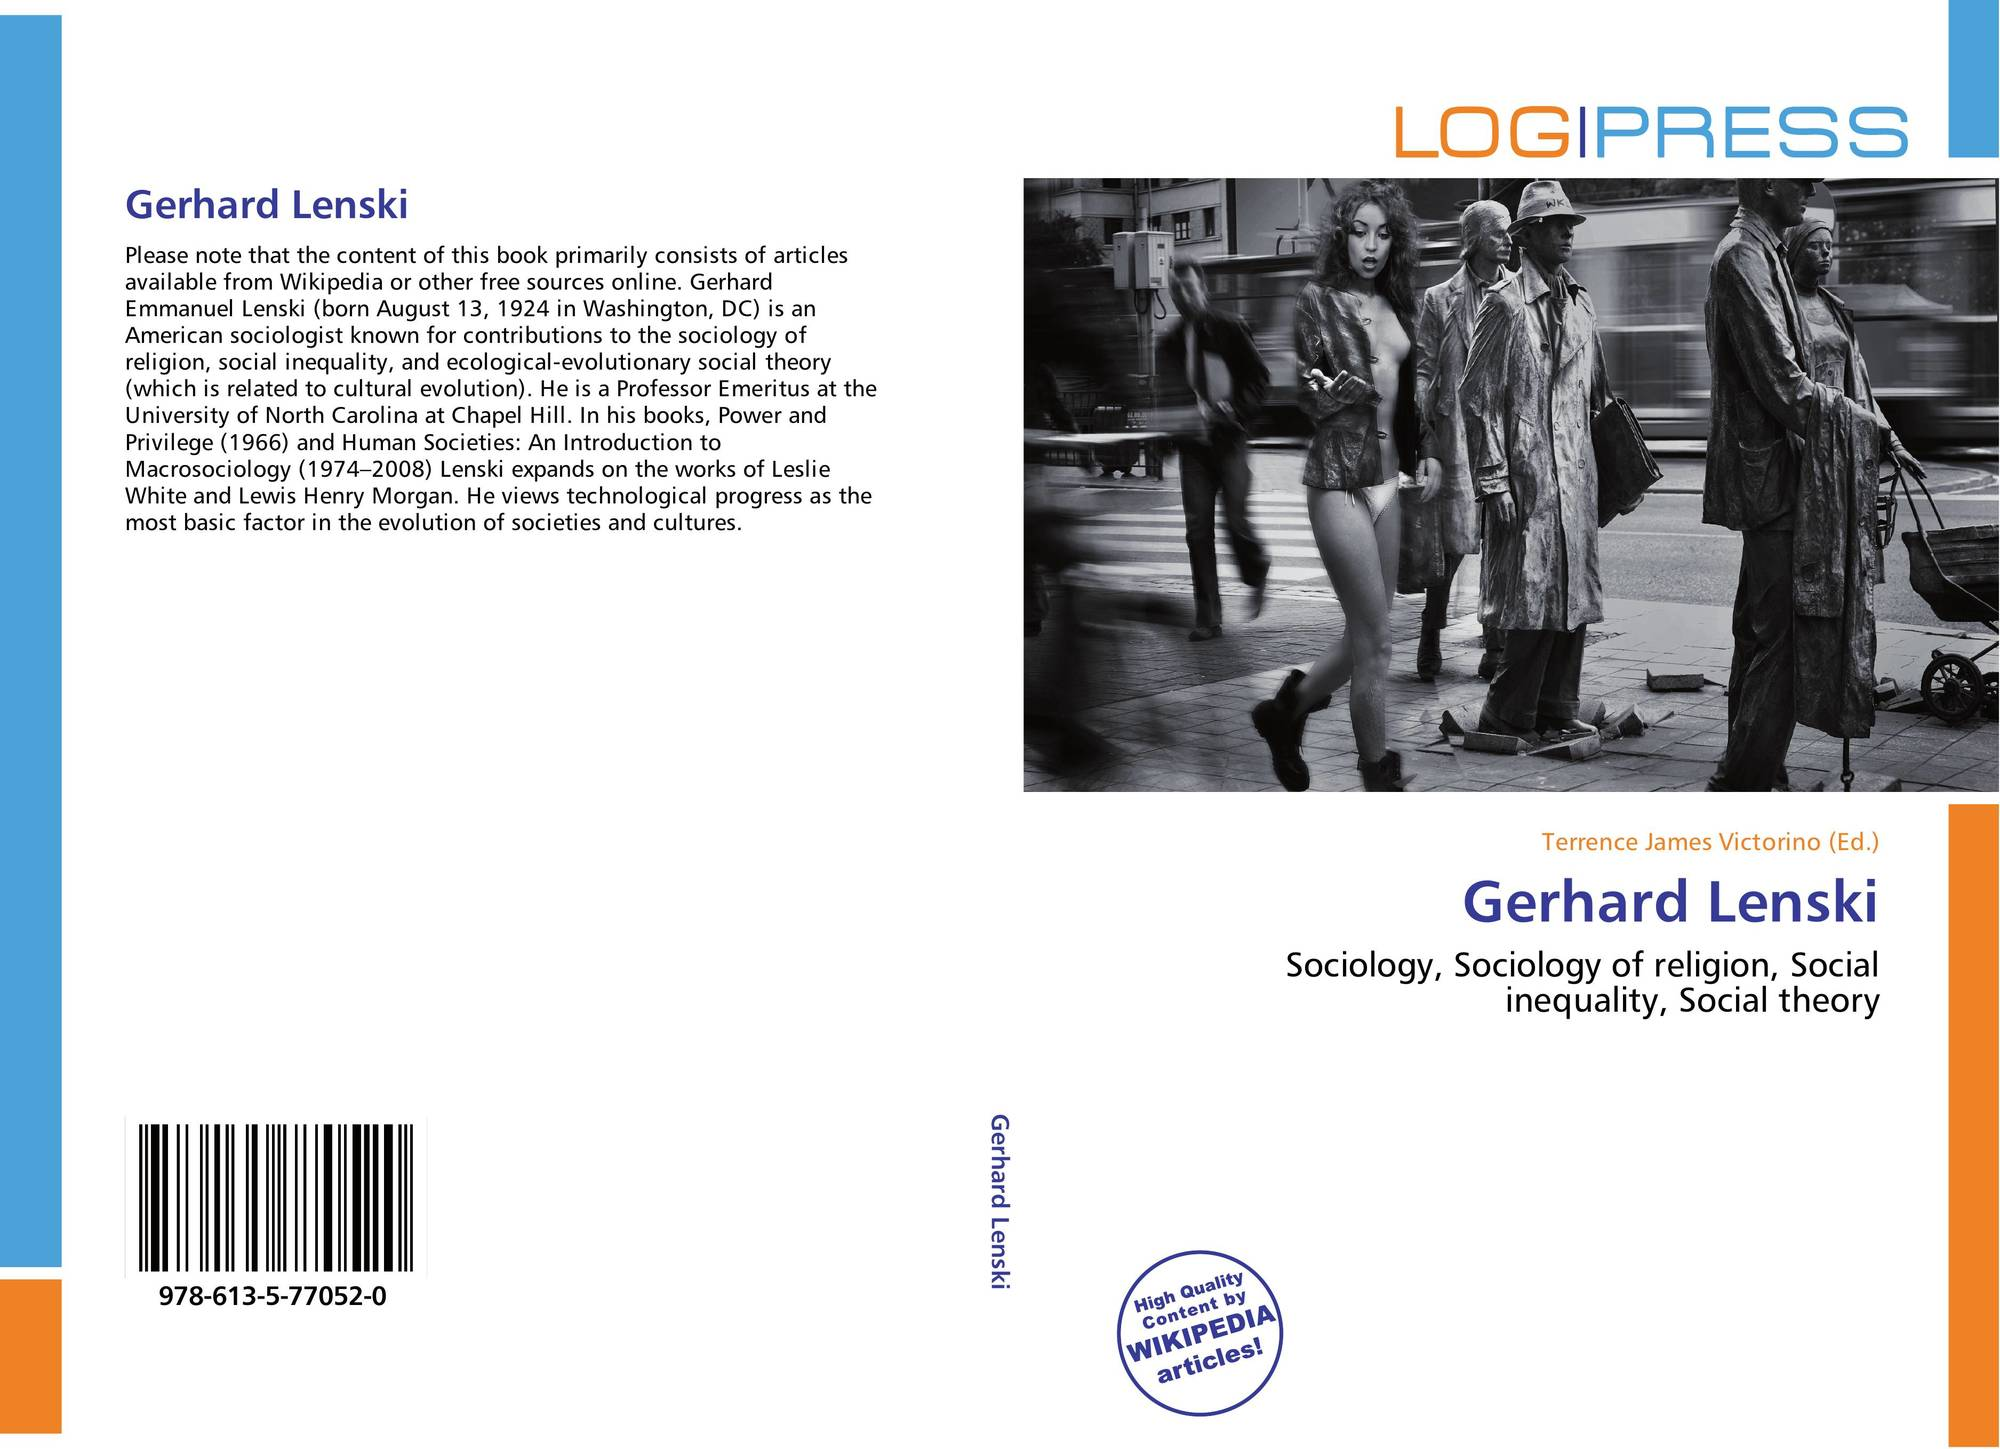 gerhard lenski society Introduction to sociology/society from wikibooks the sociological understanding of societal development relies heavily upon the work of gerhard lenski.